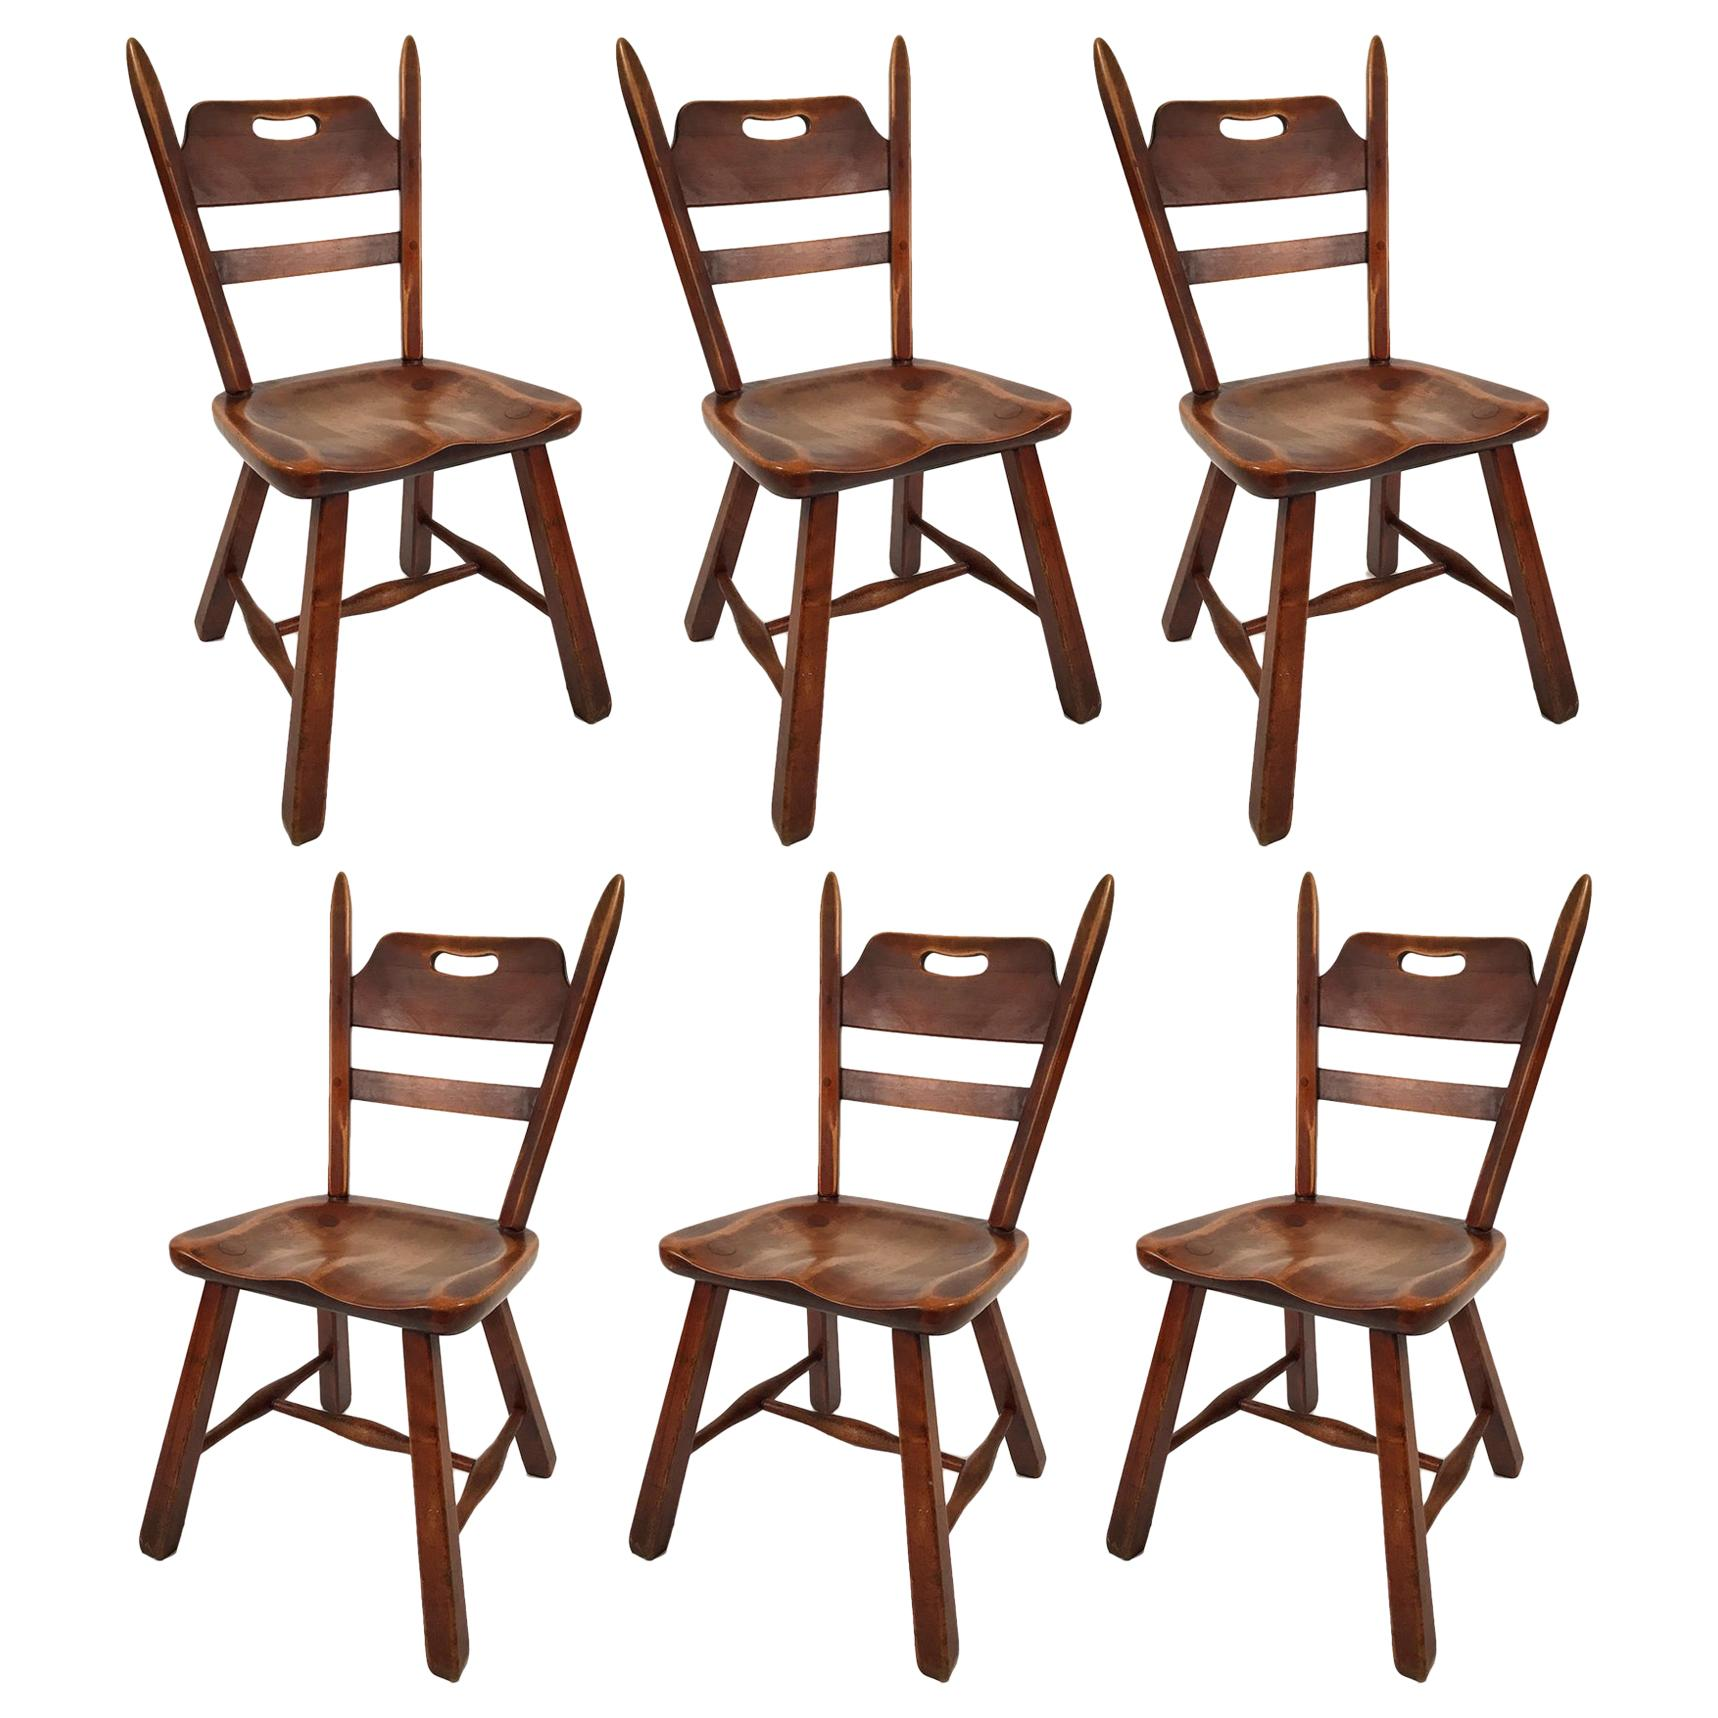 Six Hard Rock Vermont Maple Americana Dining Chairs, Herman DeVries for Cushman